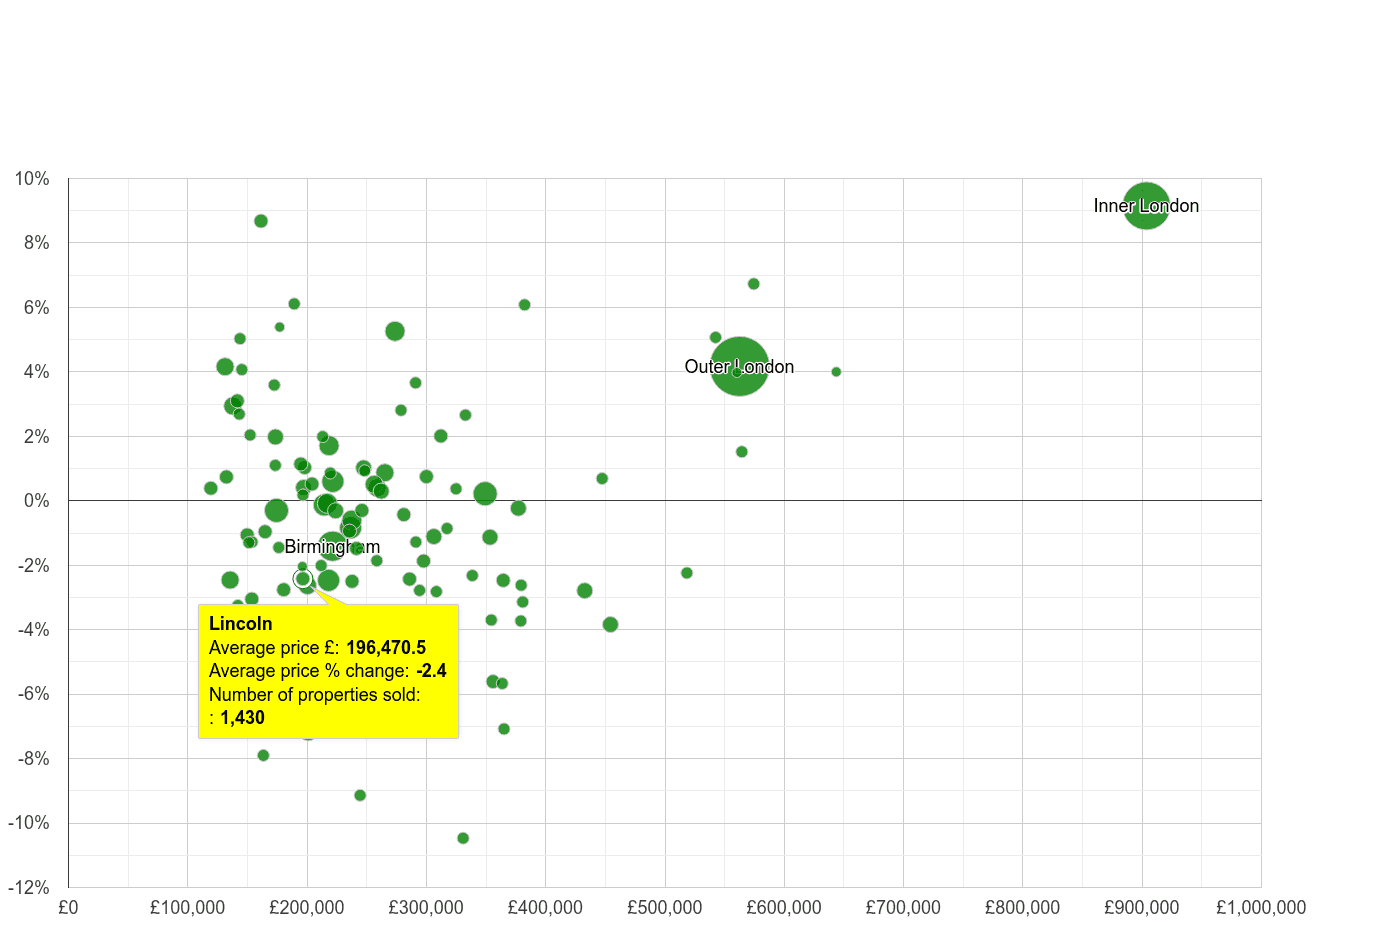 Lincoln house prices compared to other cities